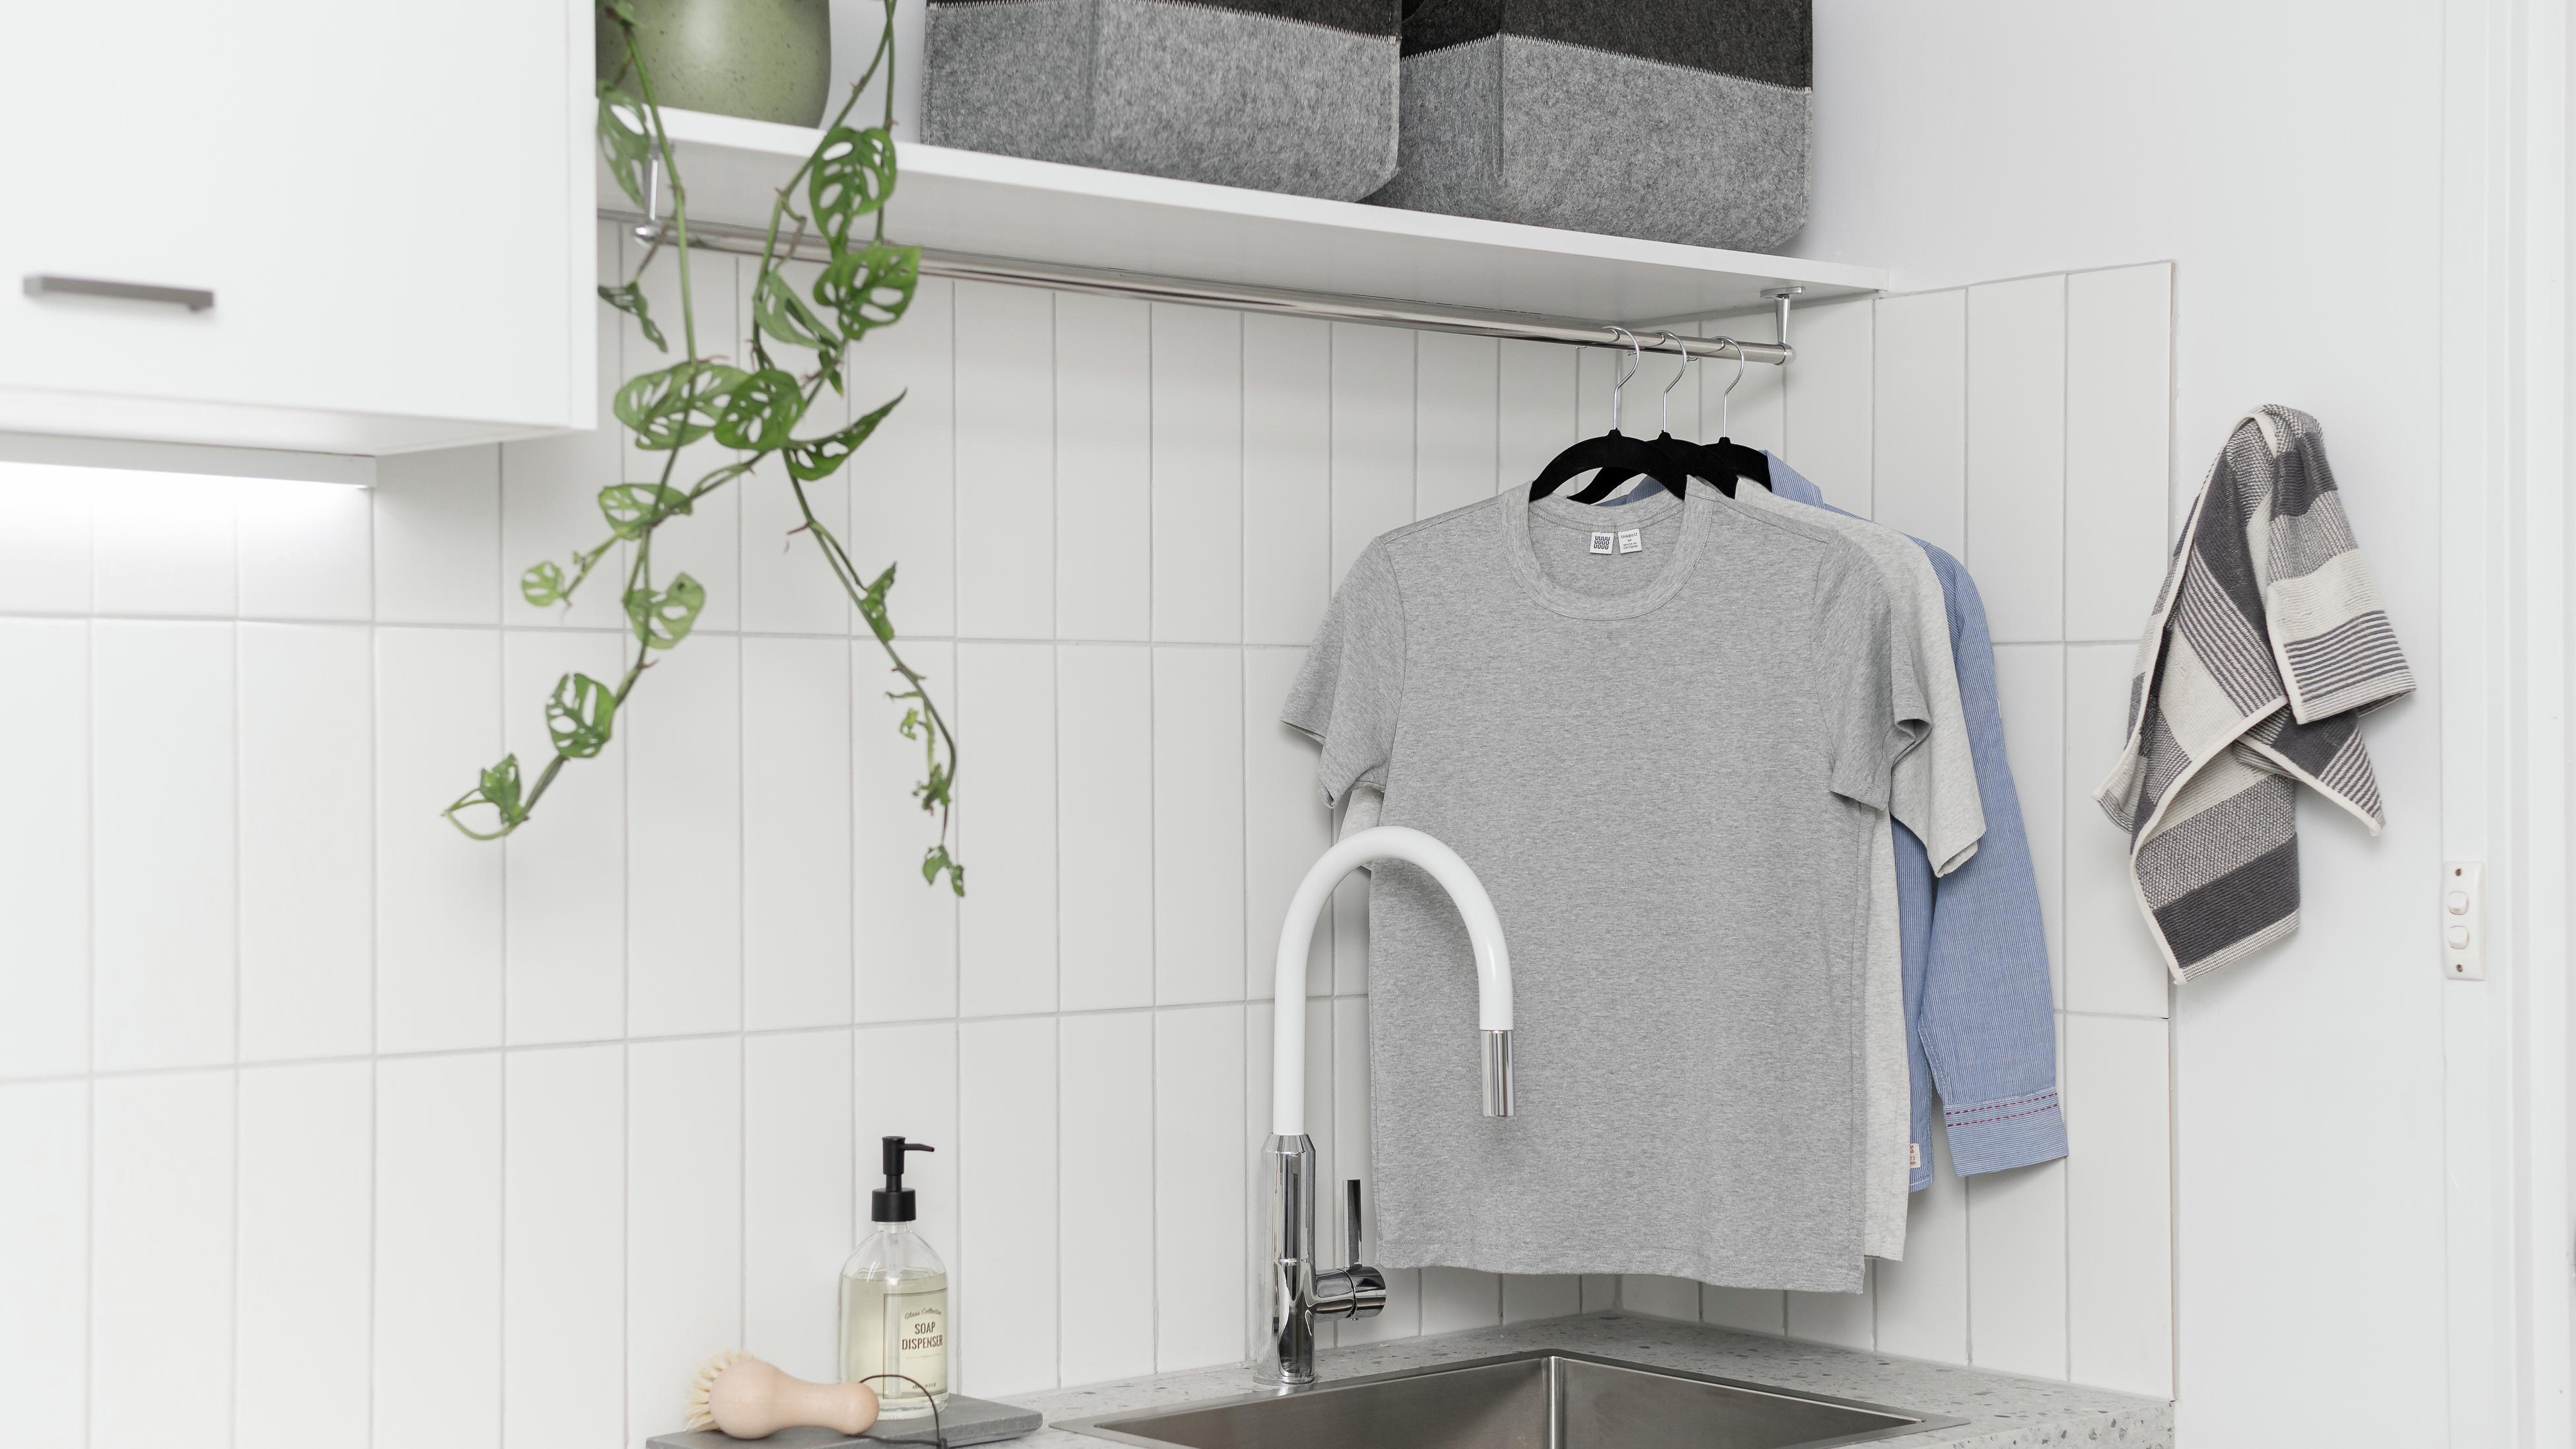 Laundry with clothing rail hanging above a sink.